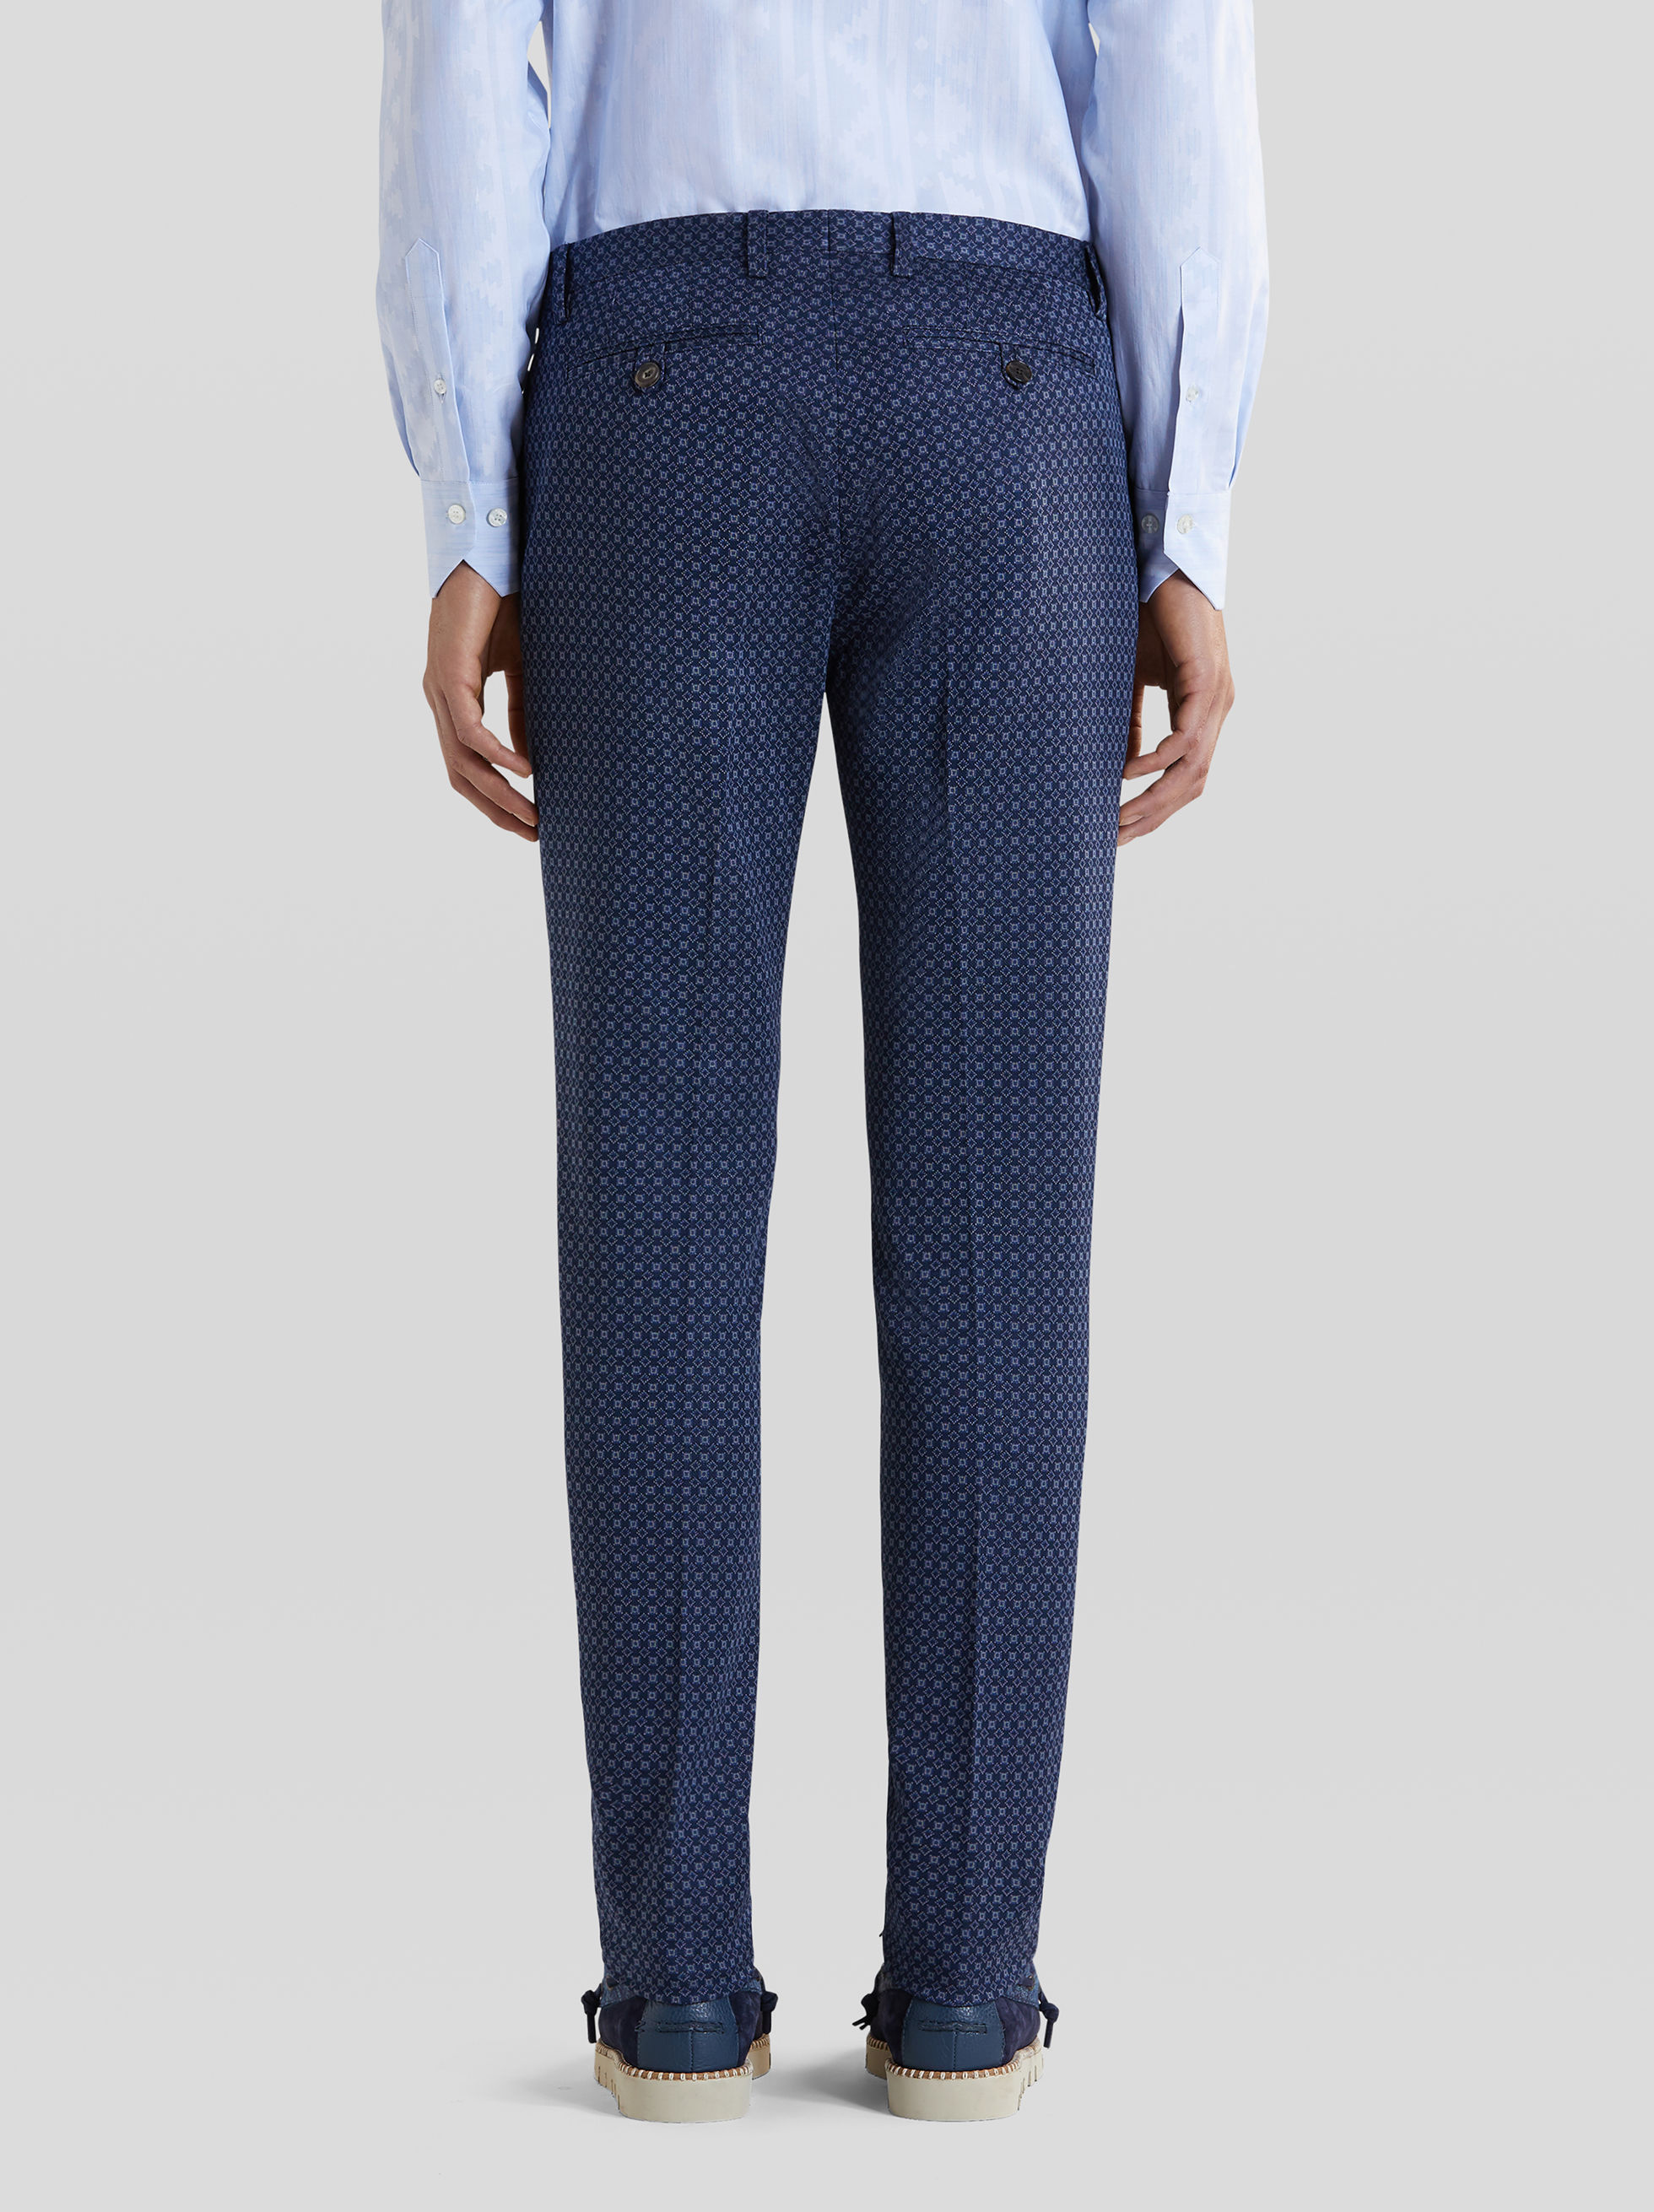 JERSEY TROUSERS WITH TIE-PRINT PATTERN